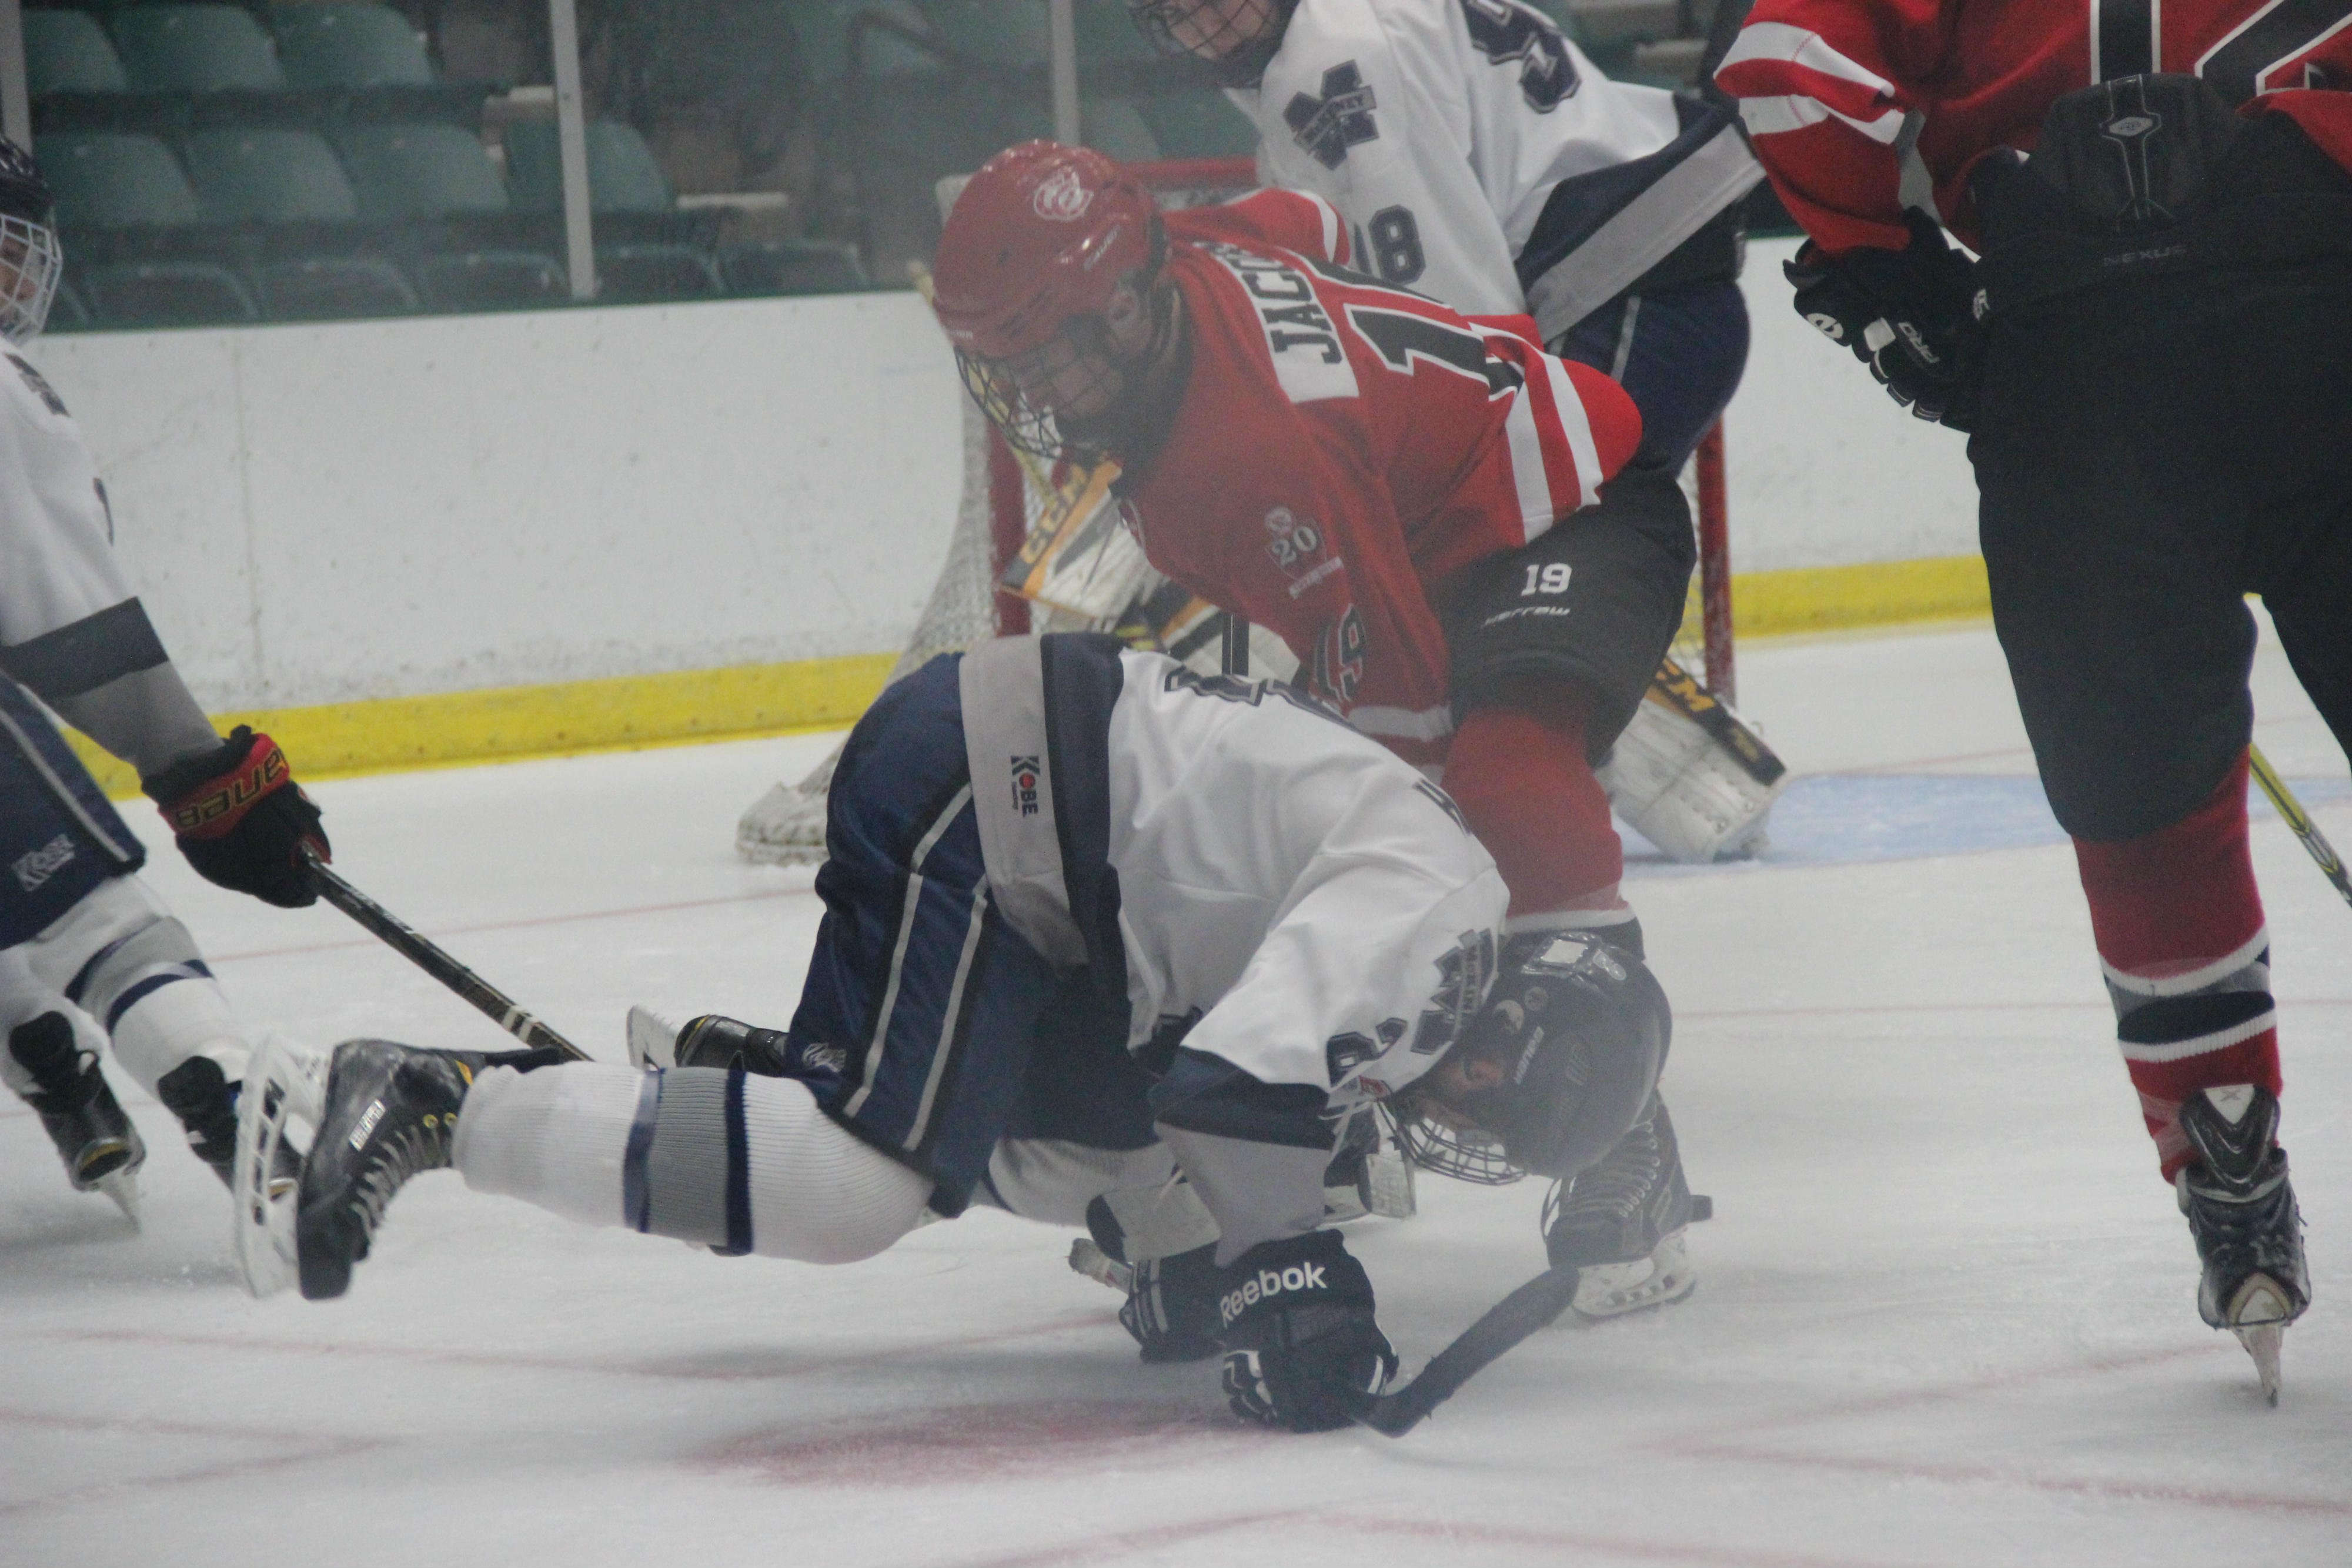 McKinney forward Patrick Conway falls to the ice in front of Coppell senior forward Collin Jacobs in Coppell's 4-2 loss to McKinney on Saturday at the Dr Pepper StarCenter in Frisco. With the loss, the Cowboys were eliminated from state title contention.